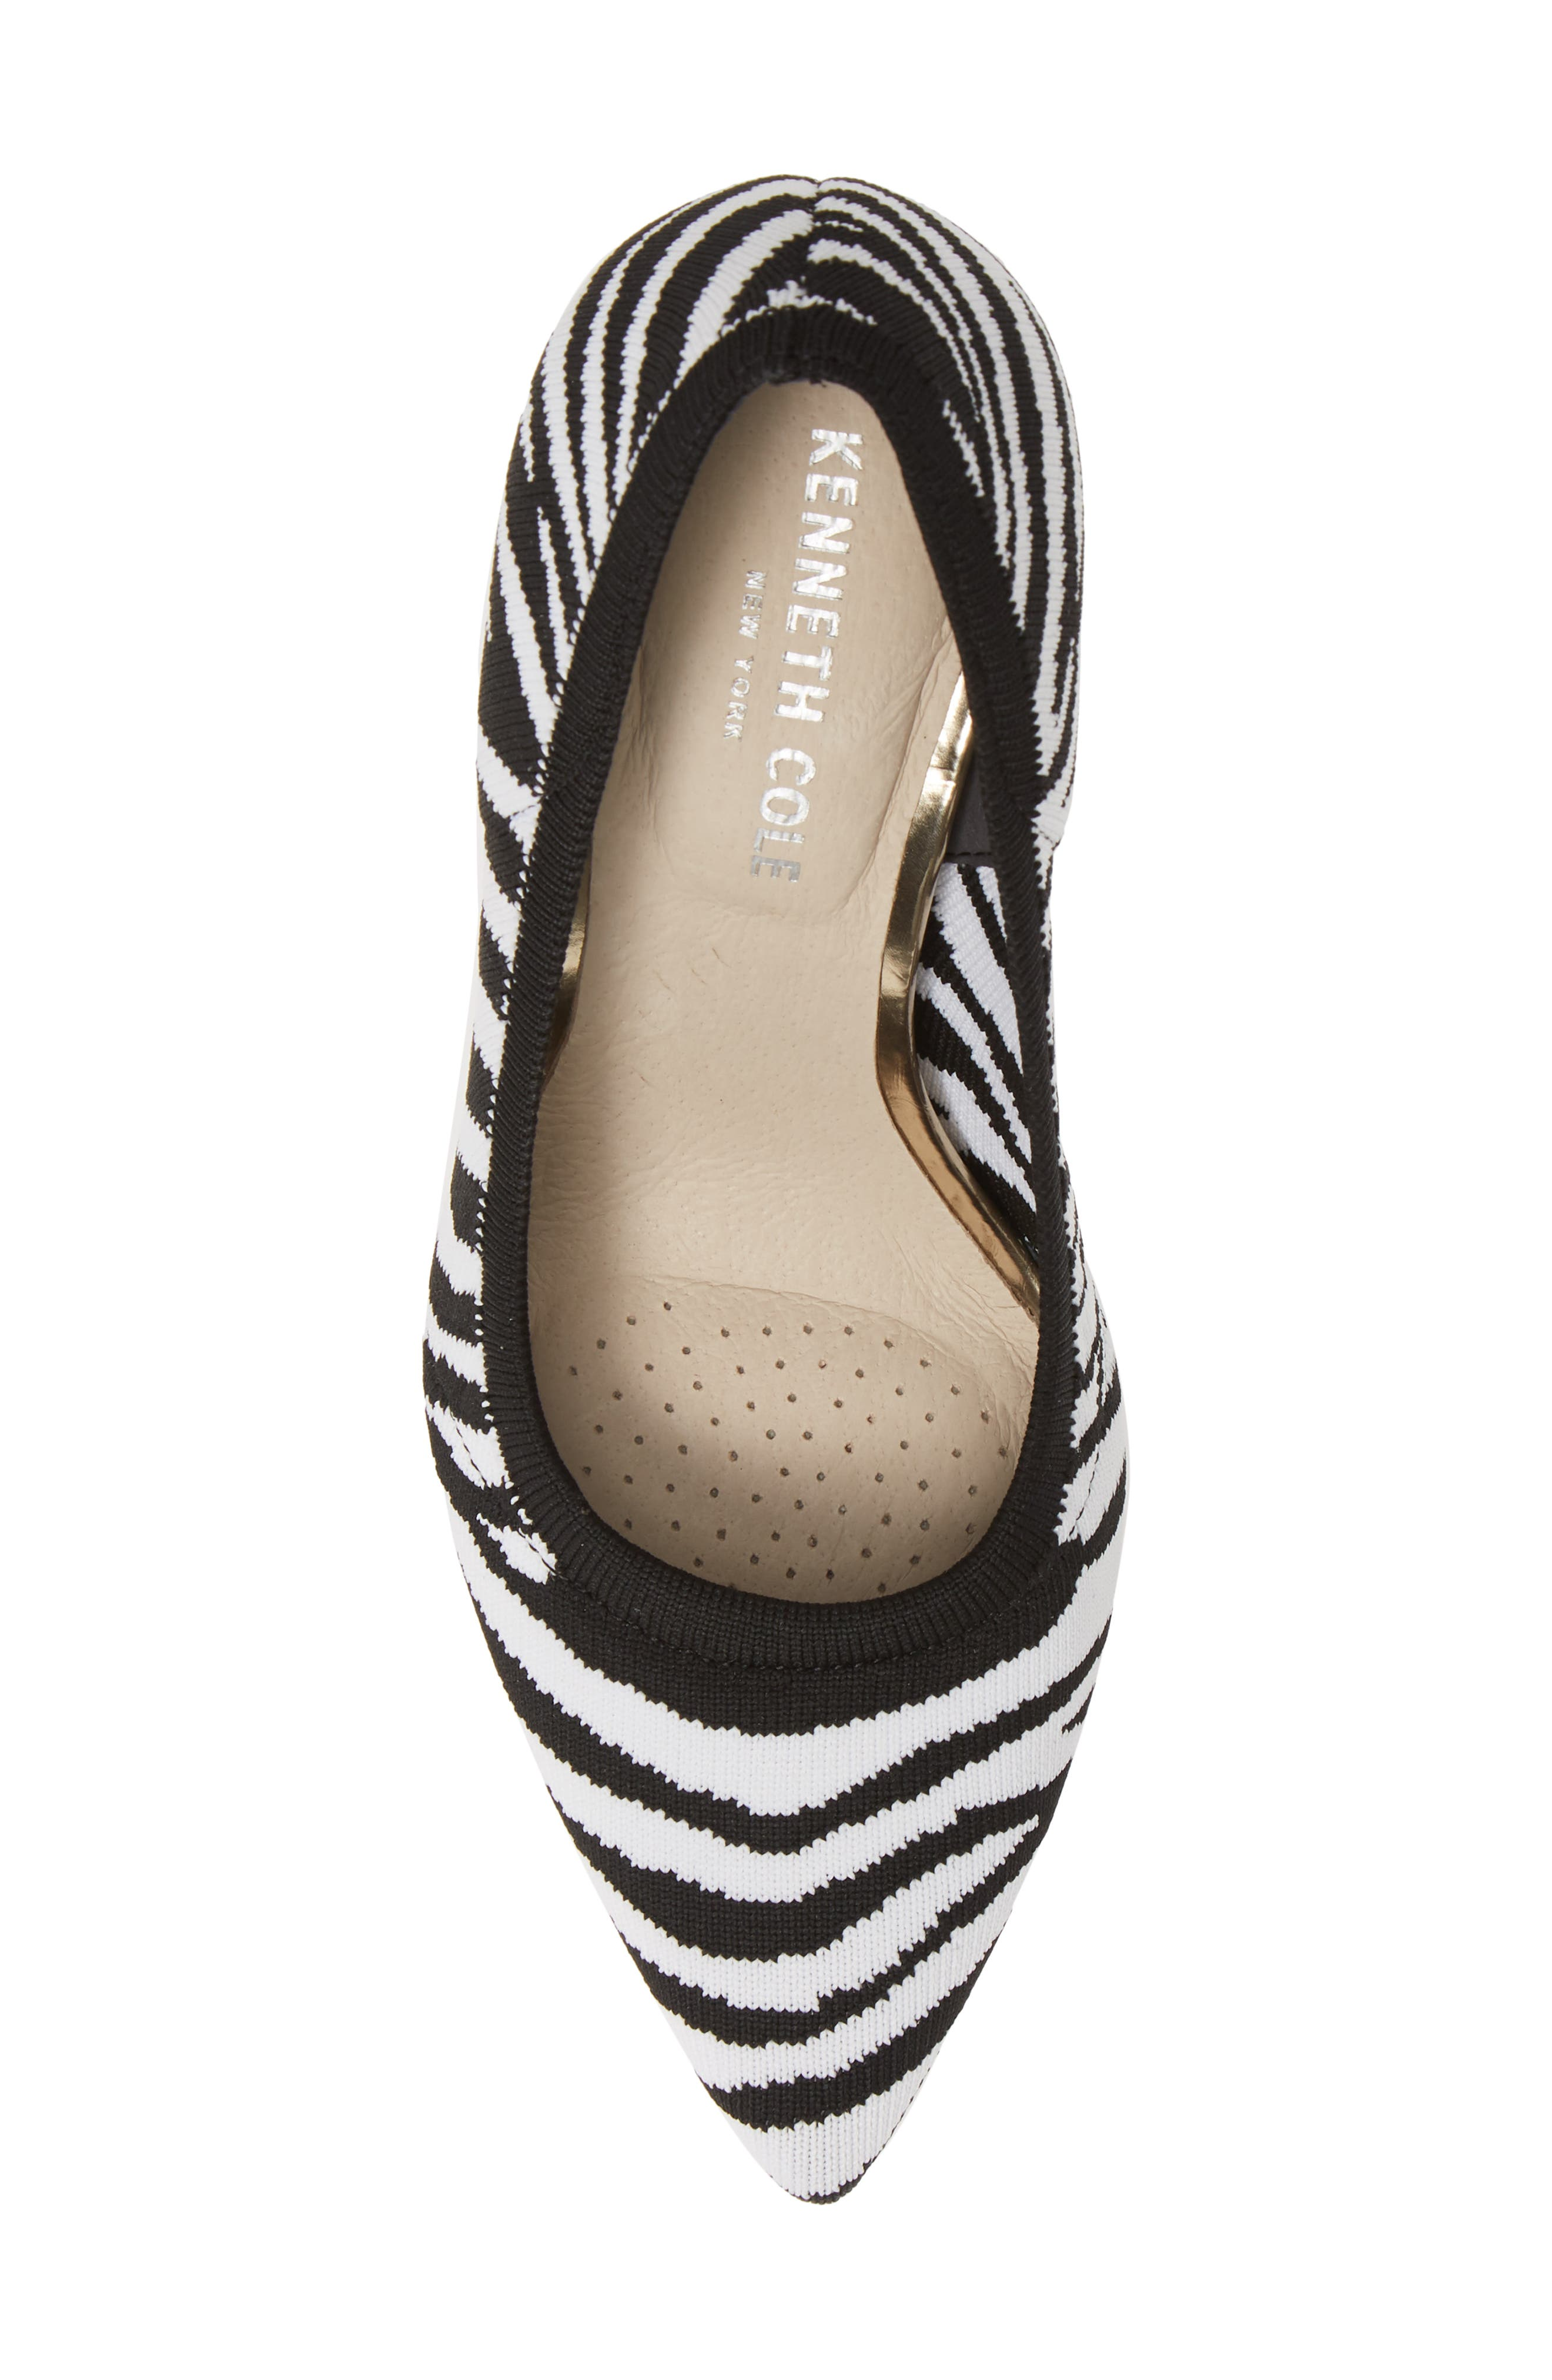 KENNETH COLE NEW YORK,                             Riley 85 Pump,                             Alternate thumbnail 5, color,                             BLACK/ WHITE KNIT